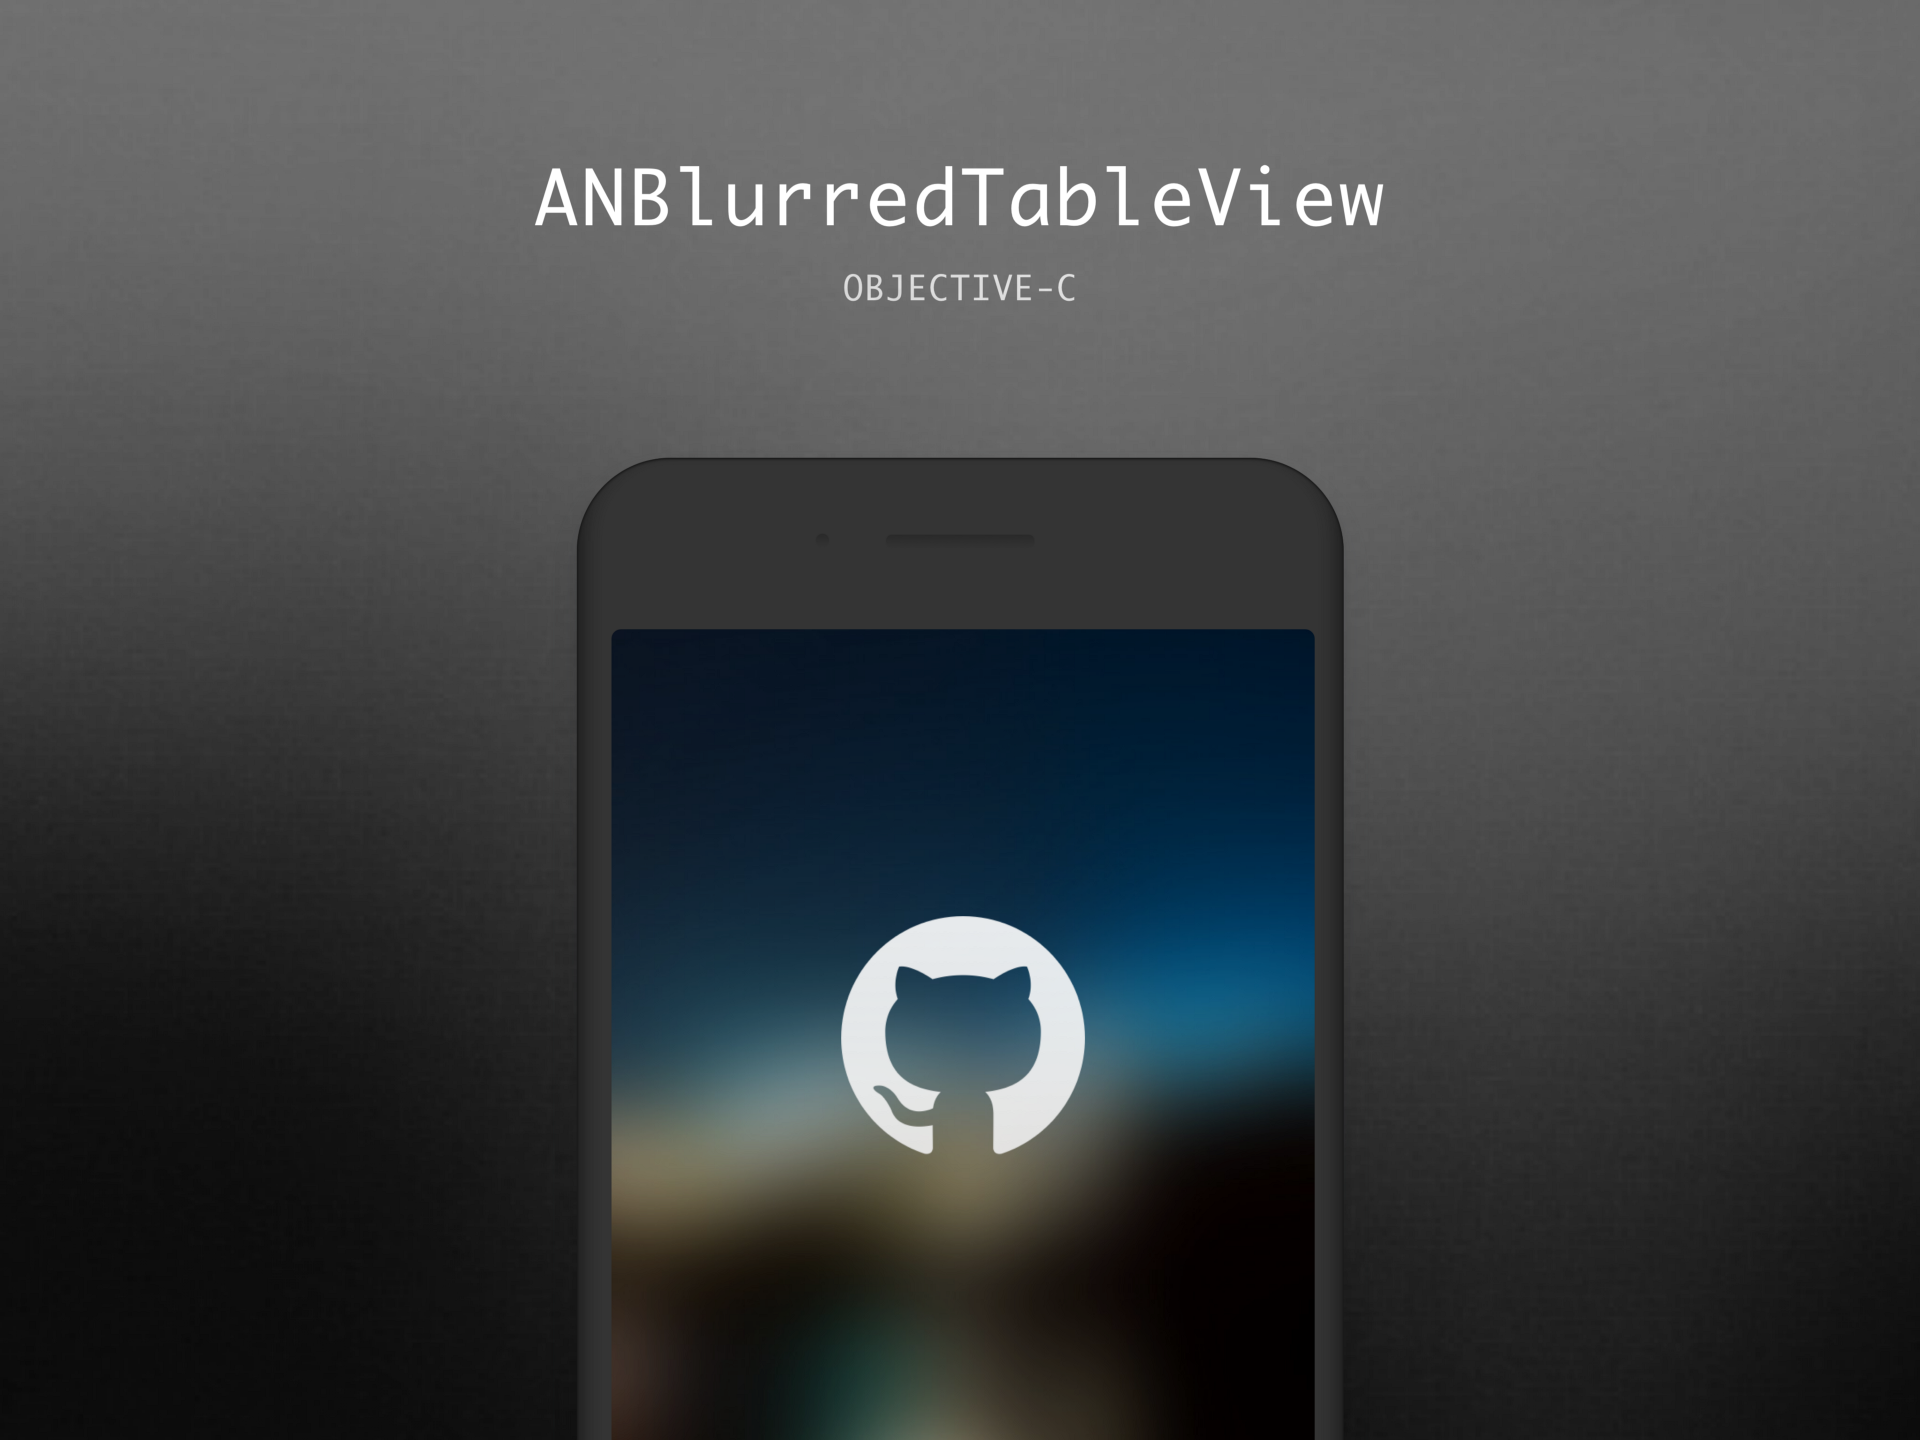 Objective c background image view - Objective C Background Image View 37